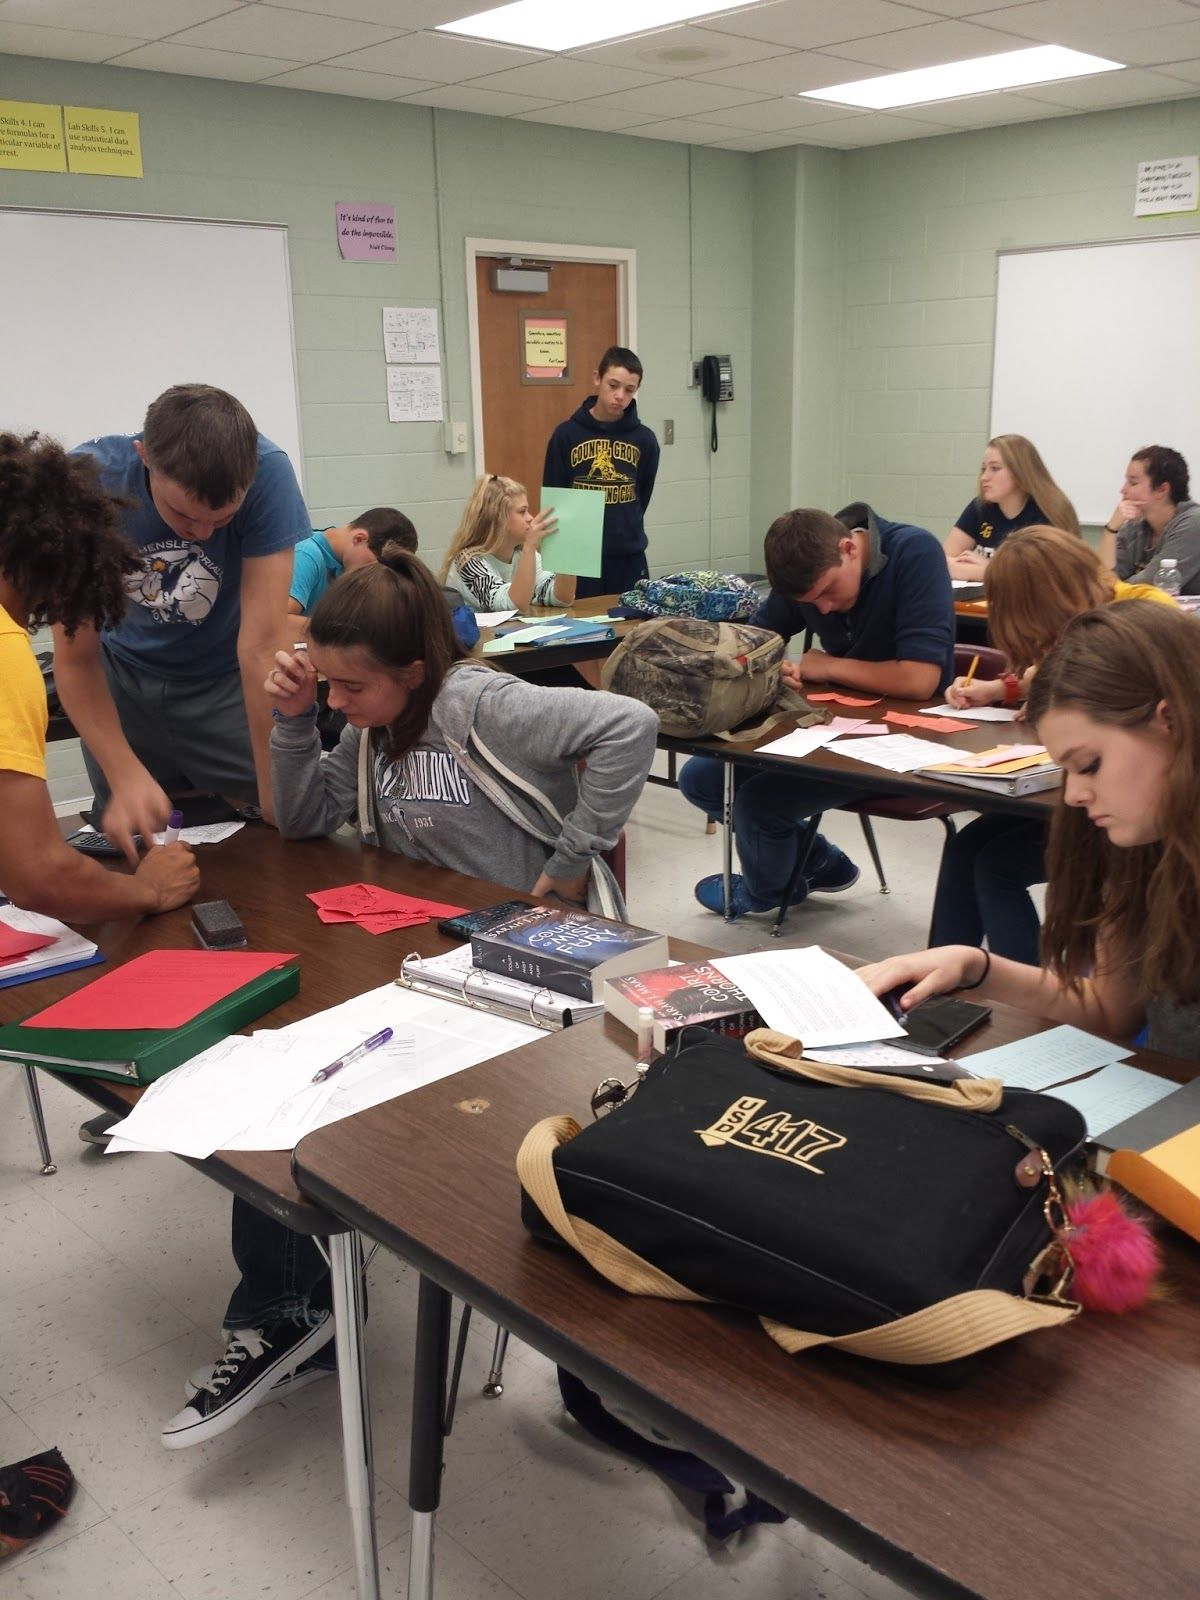 The Escape Room Final Escape room, Teaching chemistry